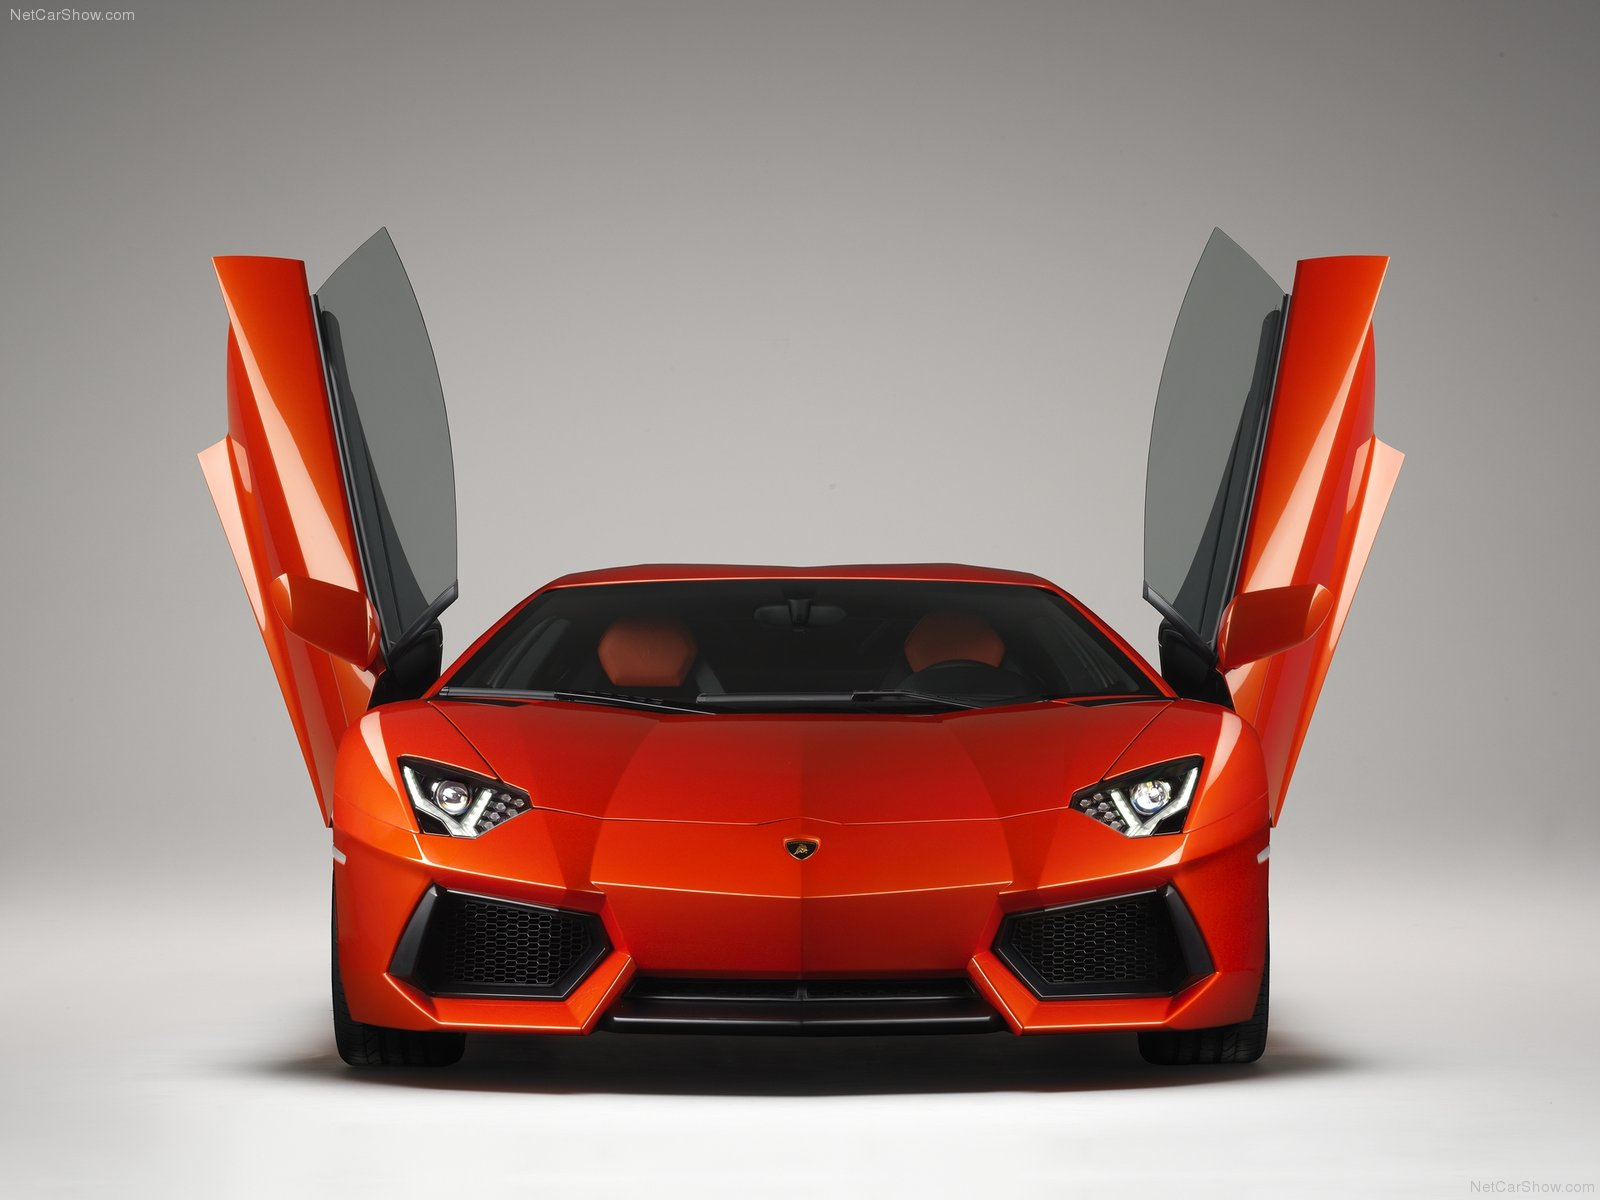 Lamborghini Aventador Wallpaper Android Phones